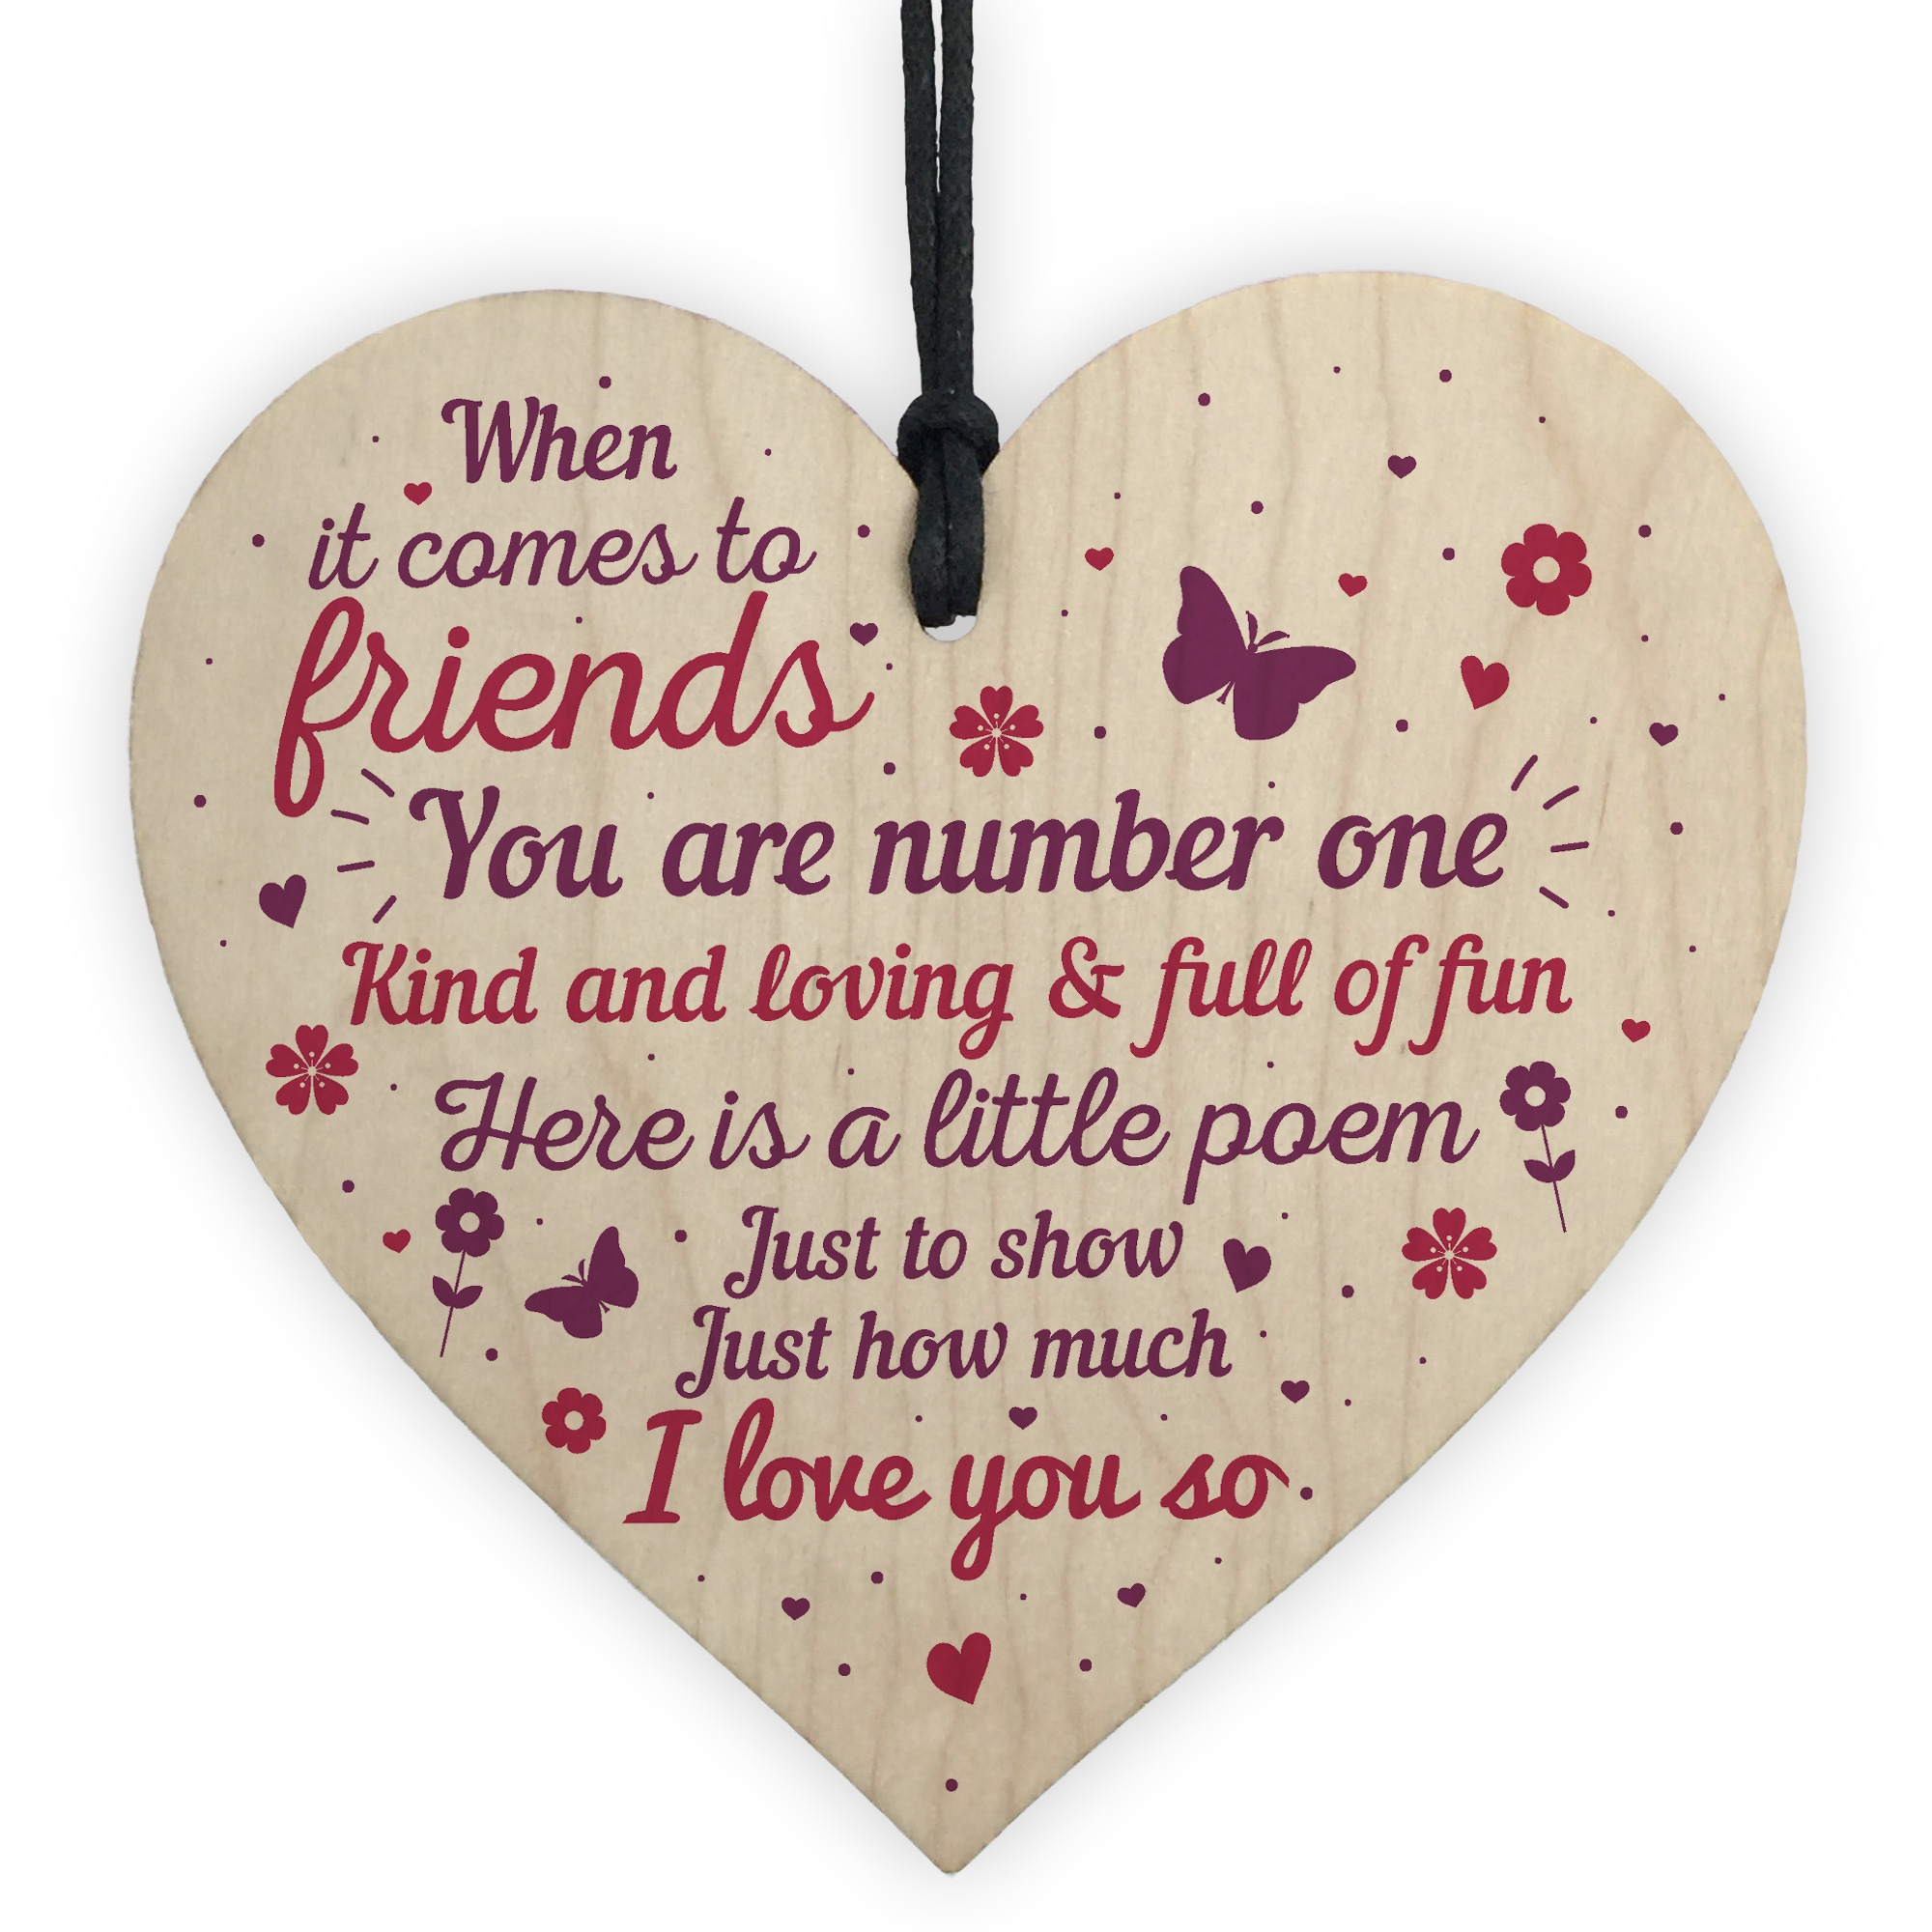 friendship quote wooden heart plaque sign birthday gift best